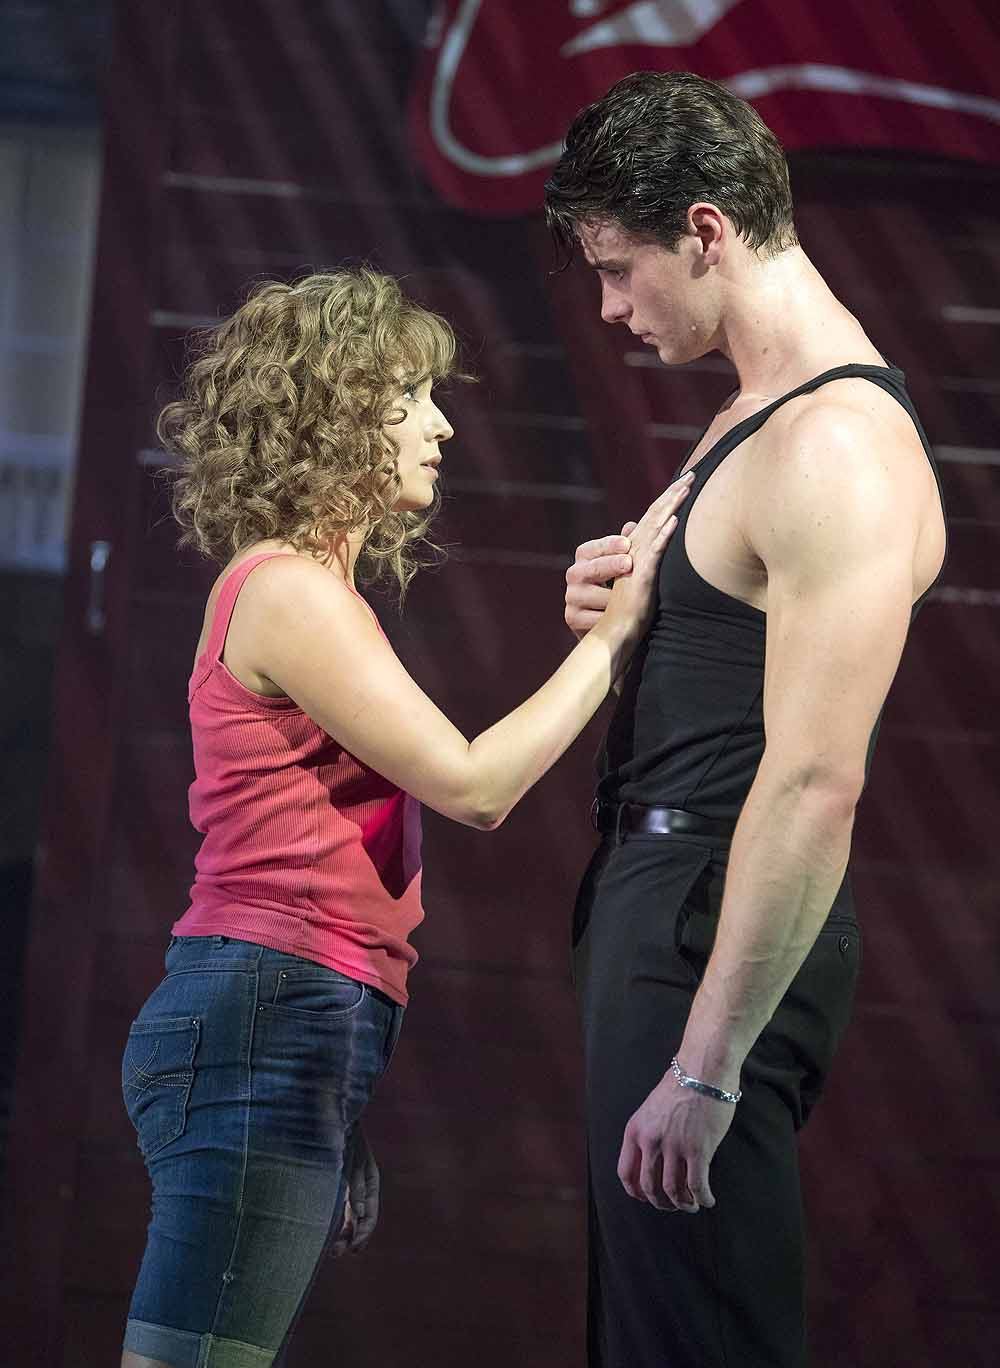 Kira Malou (Baby) Michael O'Reilly (Johnny) in Dirty Dancing - The Classic Story on Stage; Photo credit Alastair Muir